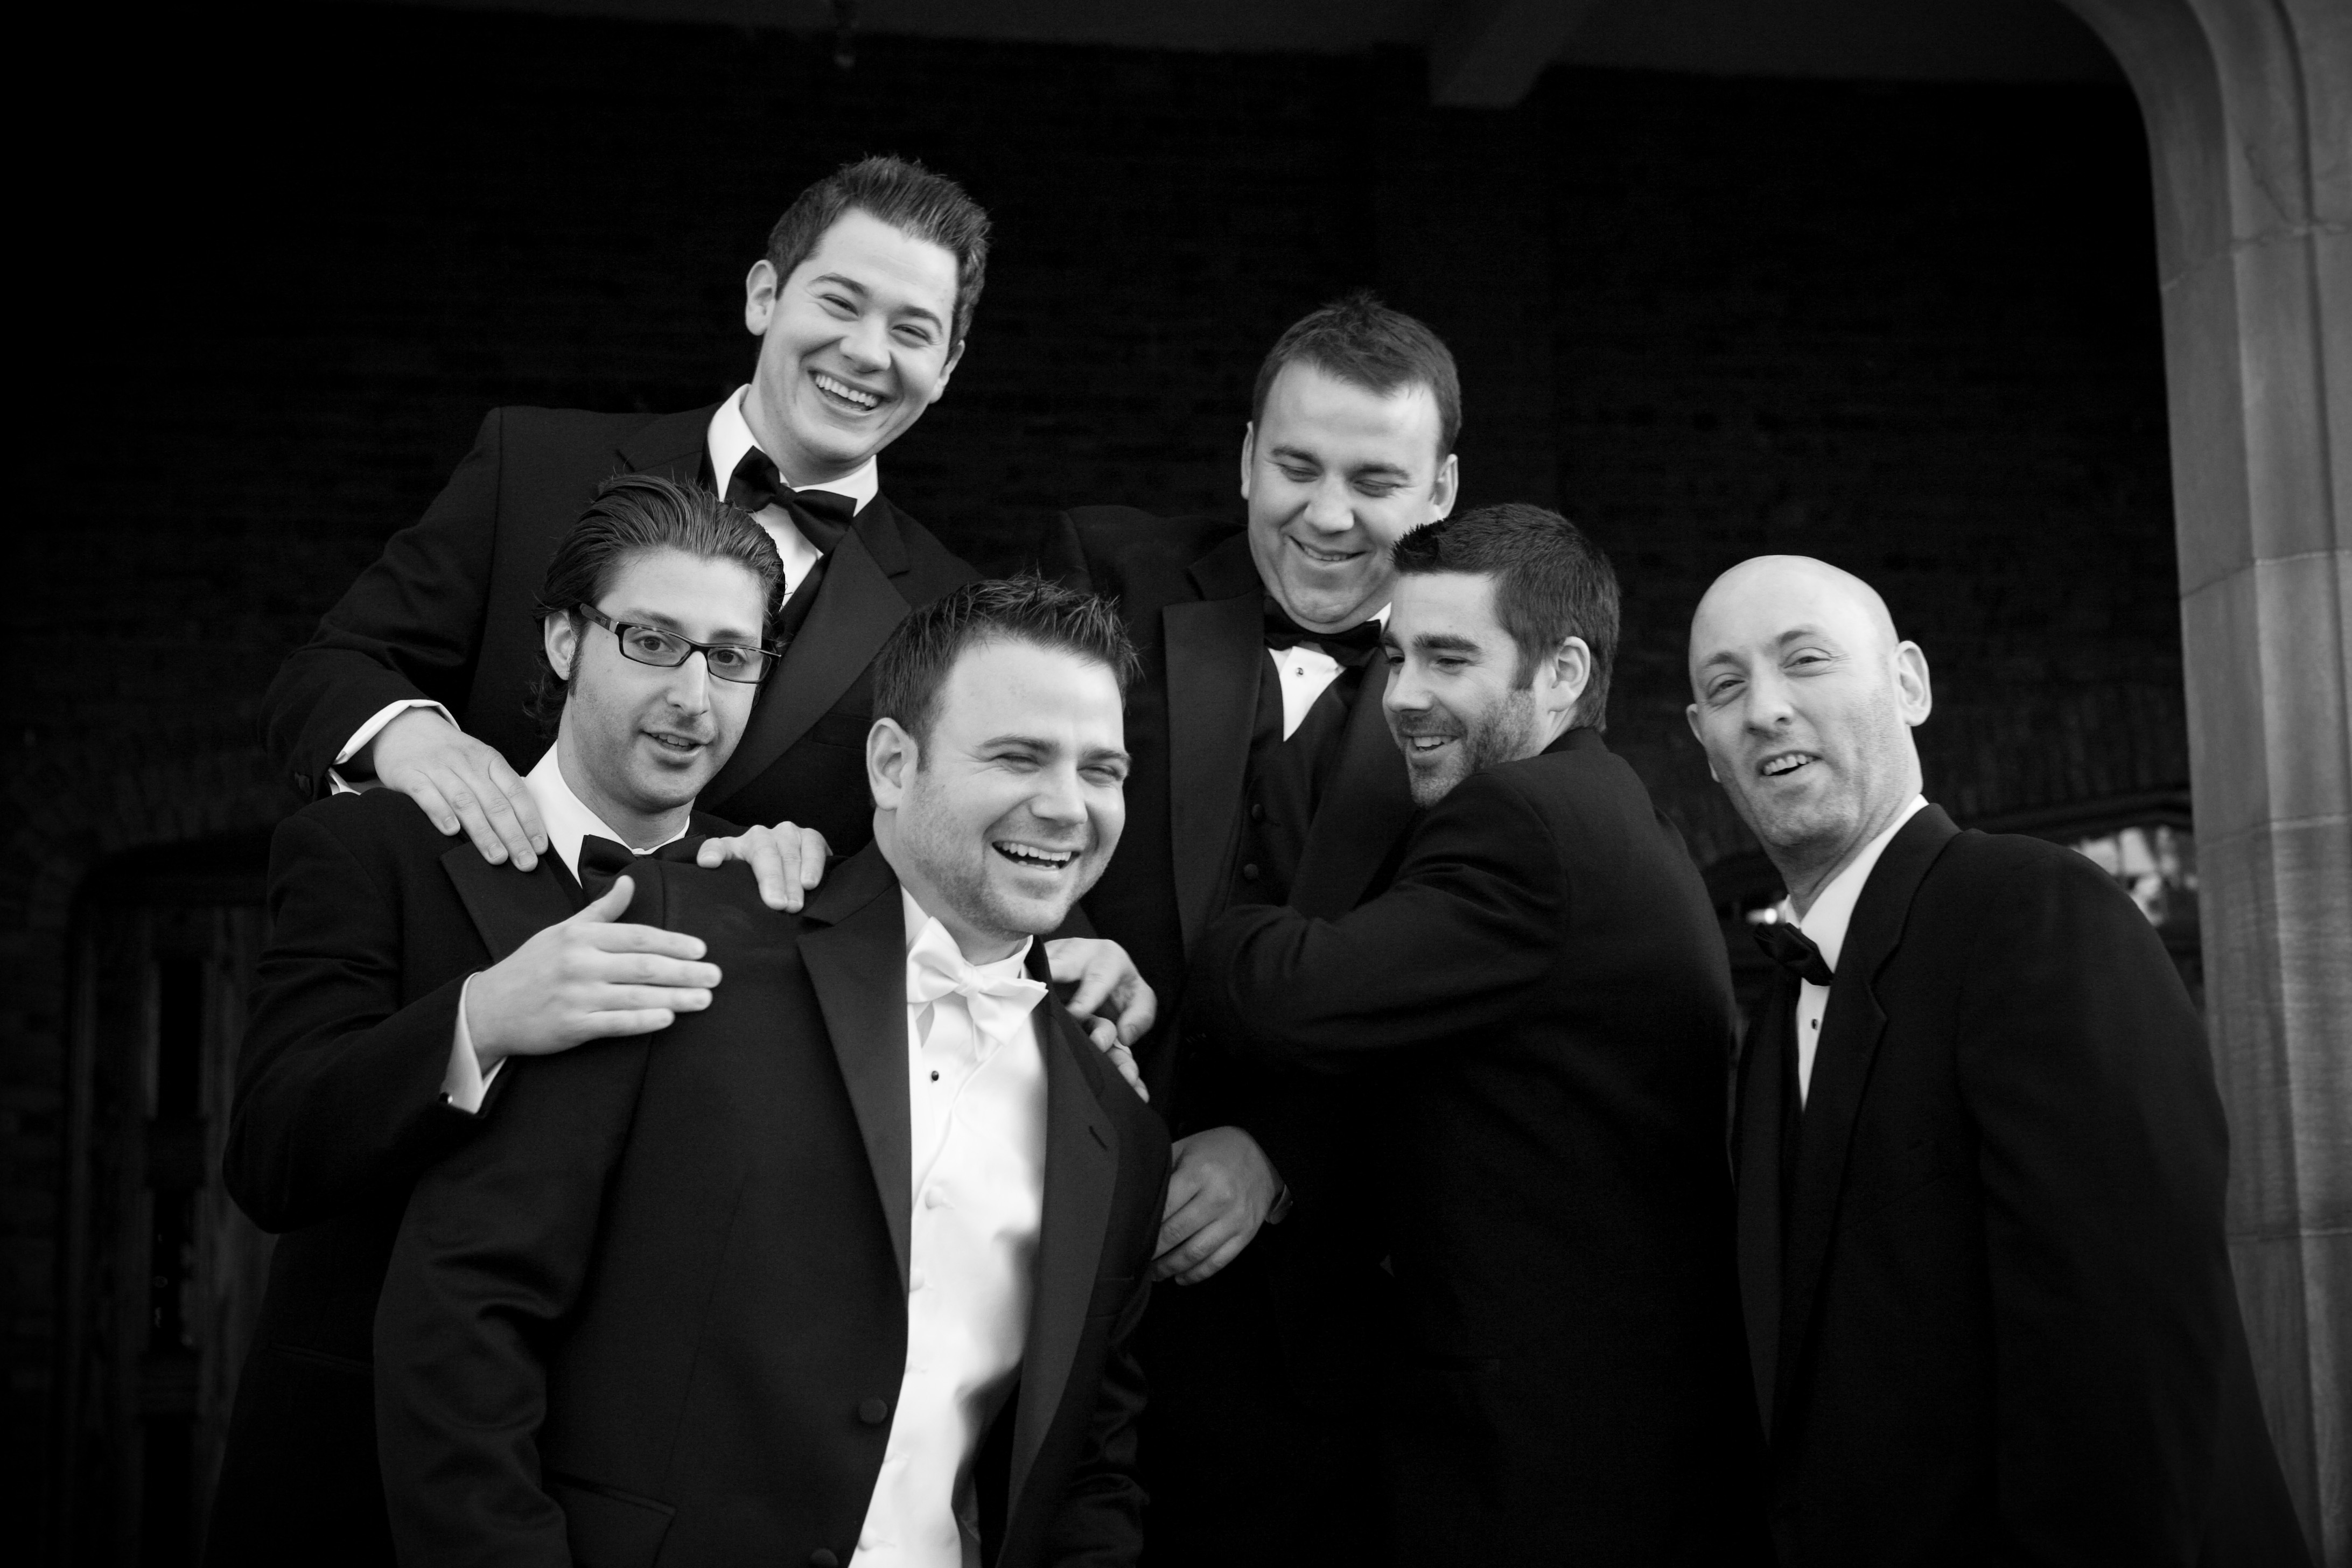 Groomsmen, Groom, Party, Bridal